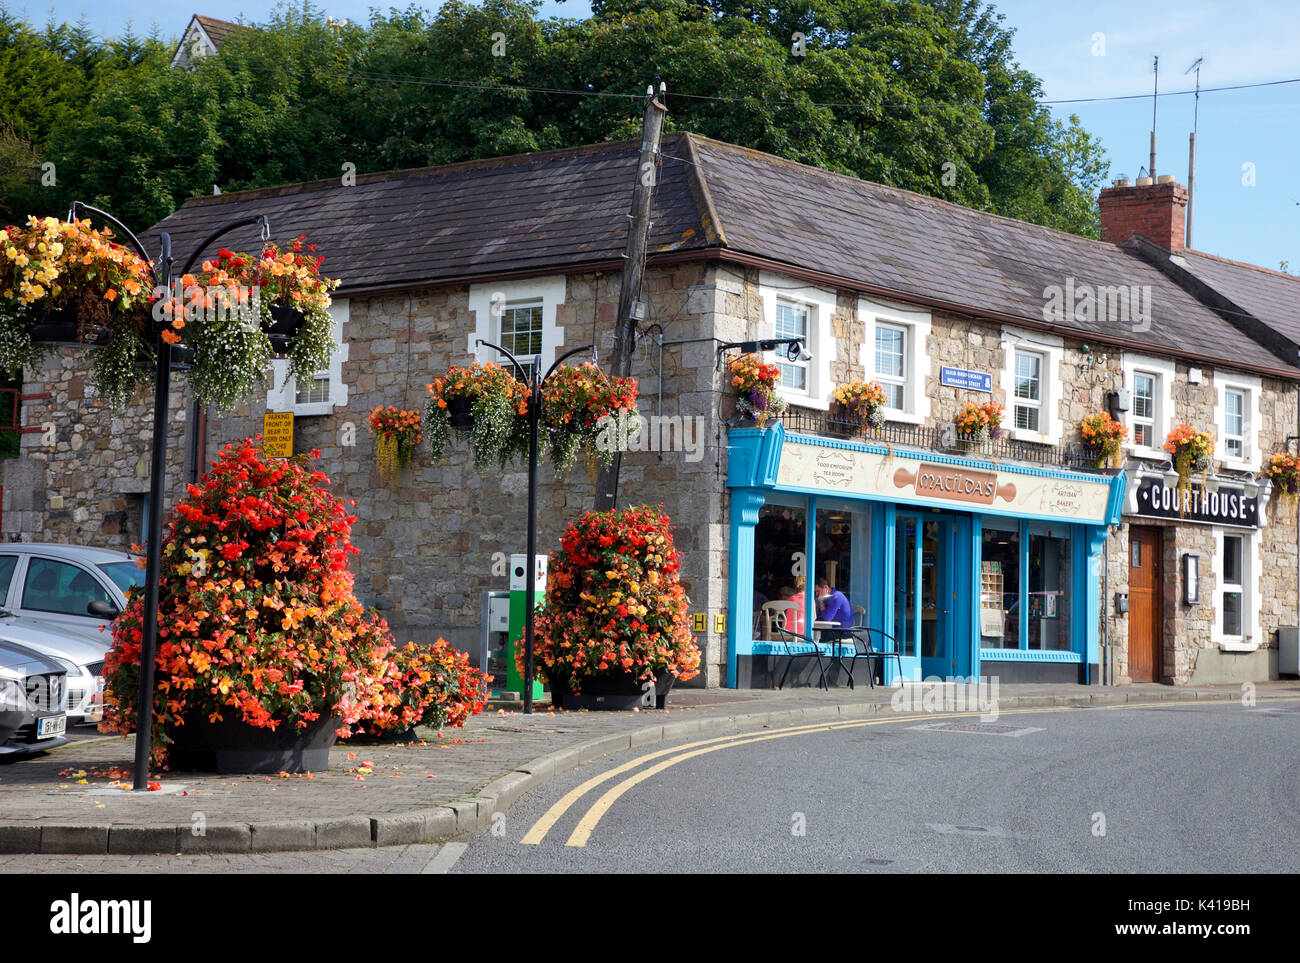 Matilda's and Courthpuse Restaurant in the Foodie town of Carrickmacross, Co. Monaghan - Stock Image